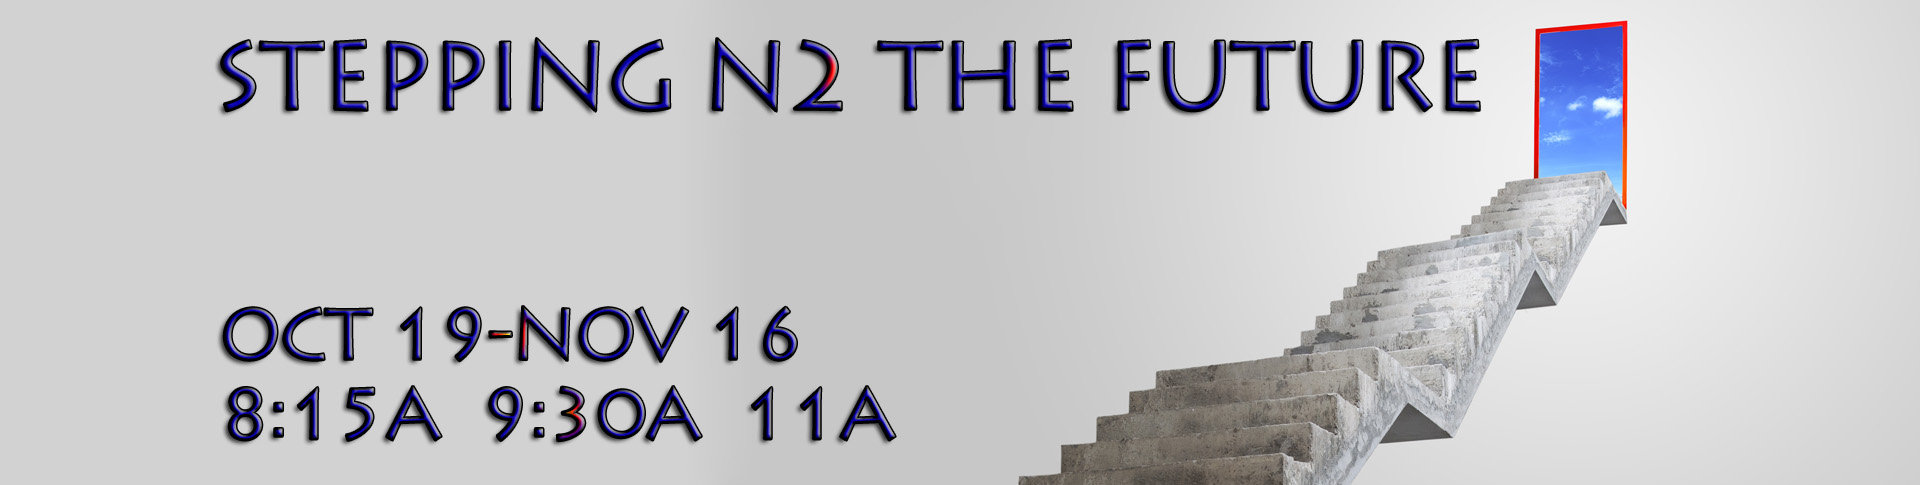 SteppingN2TheFuture1920x485